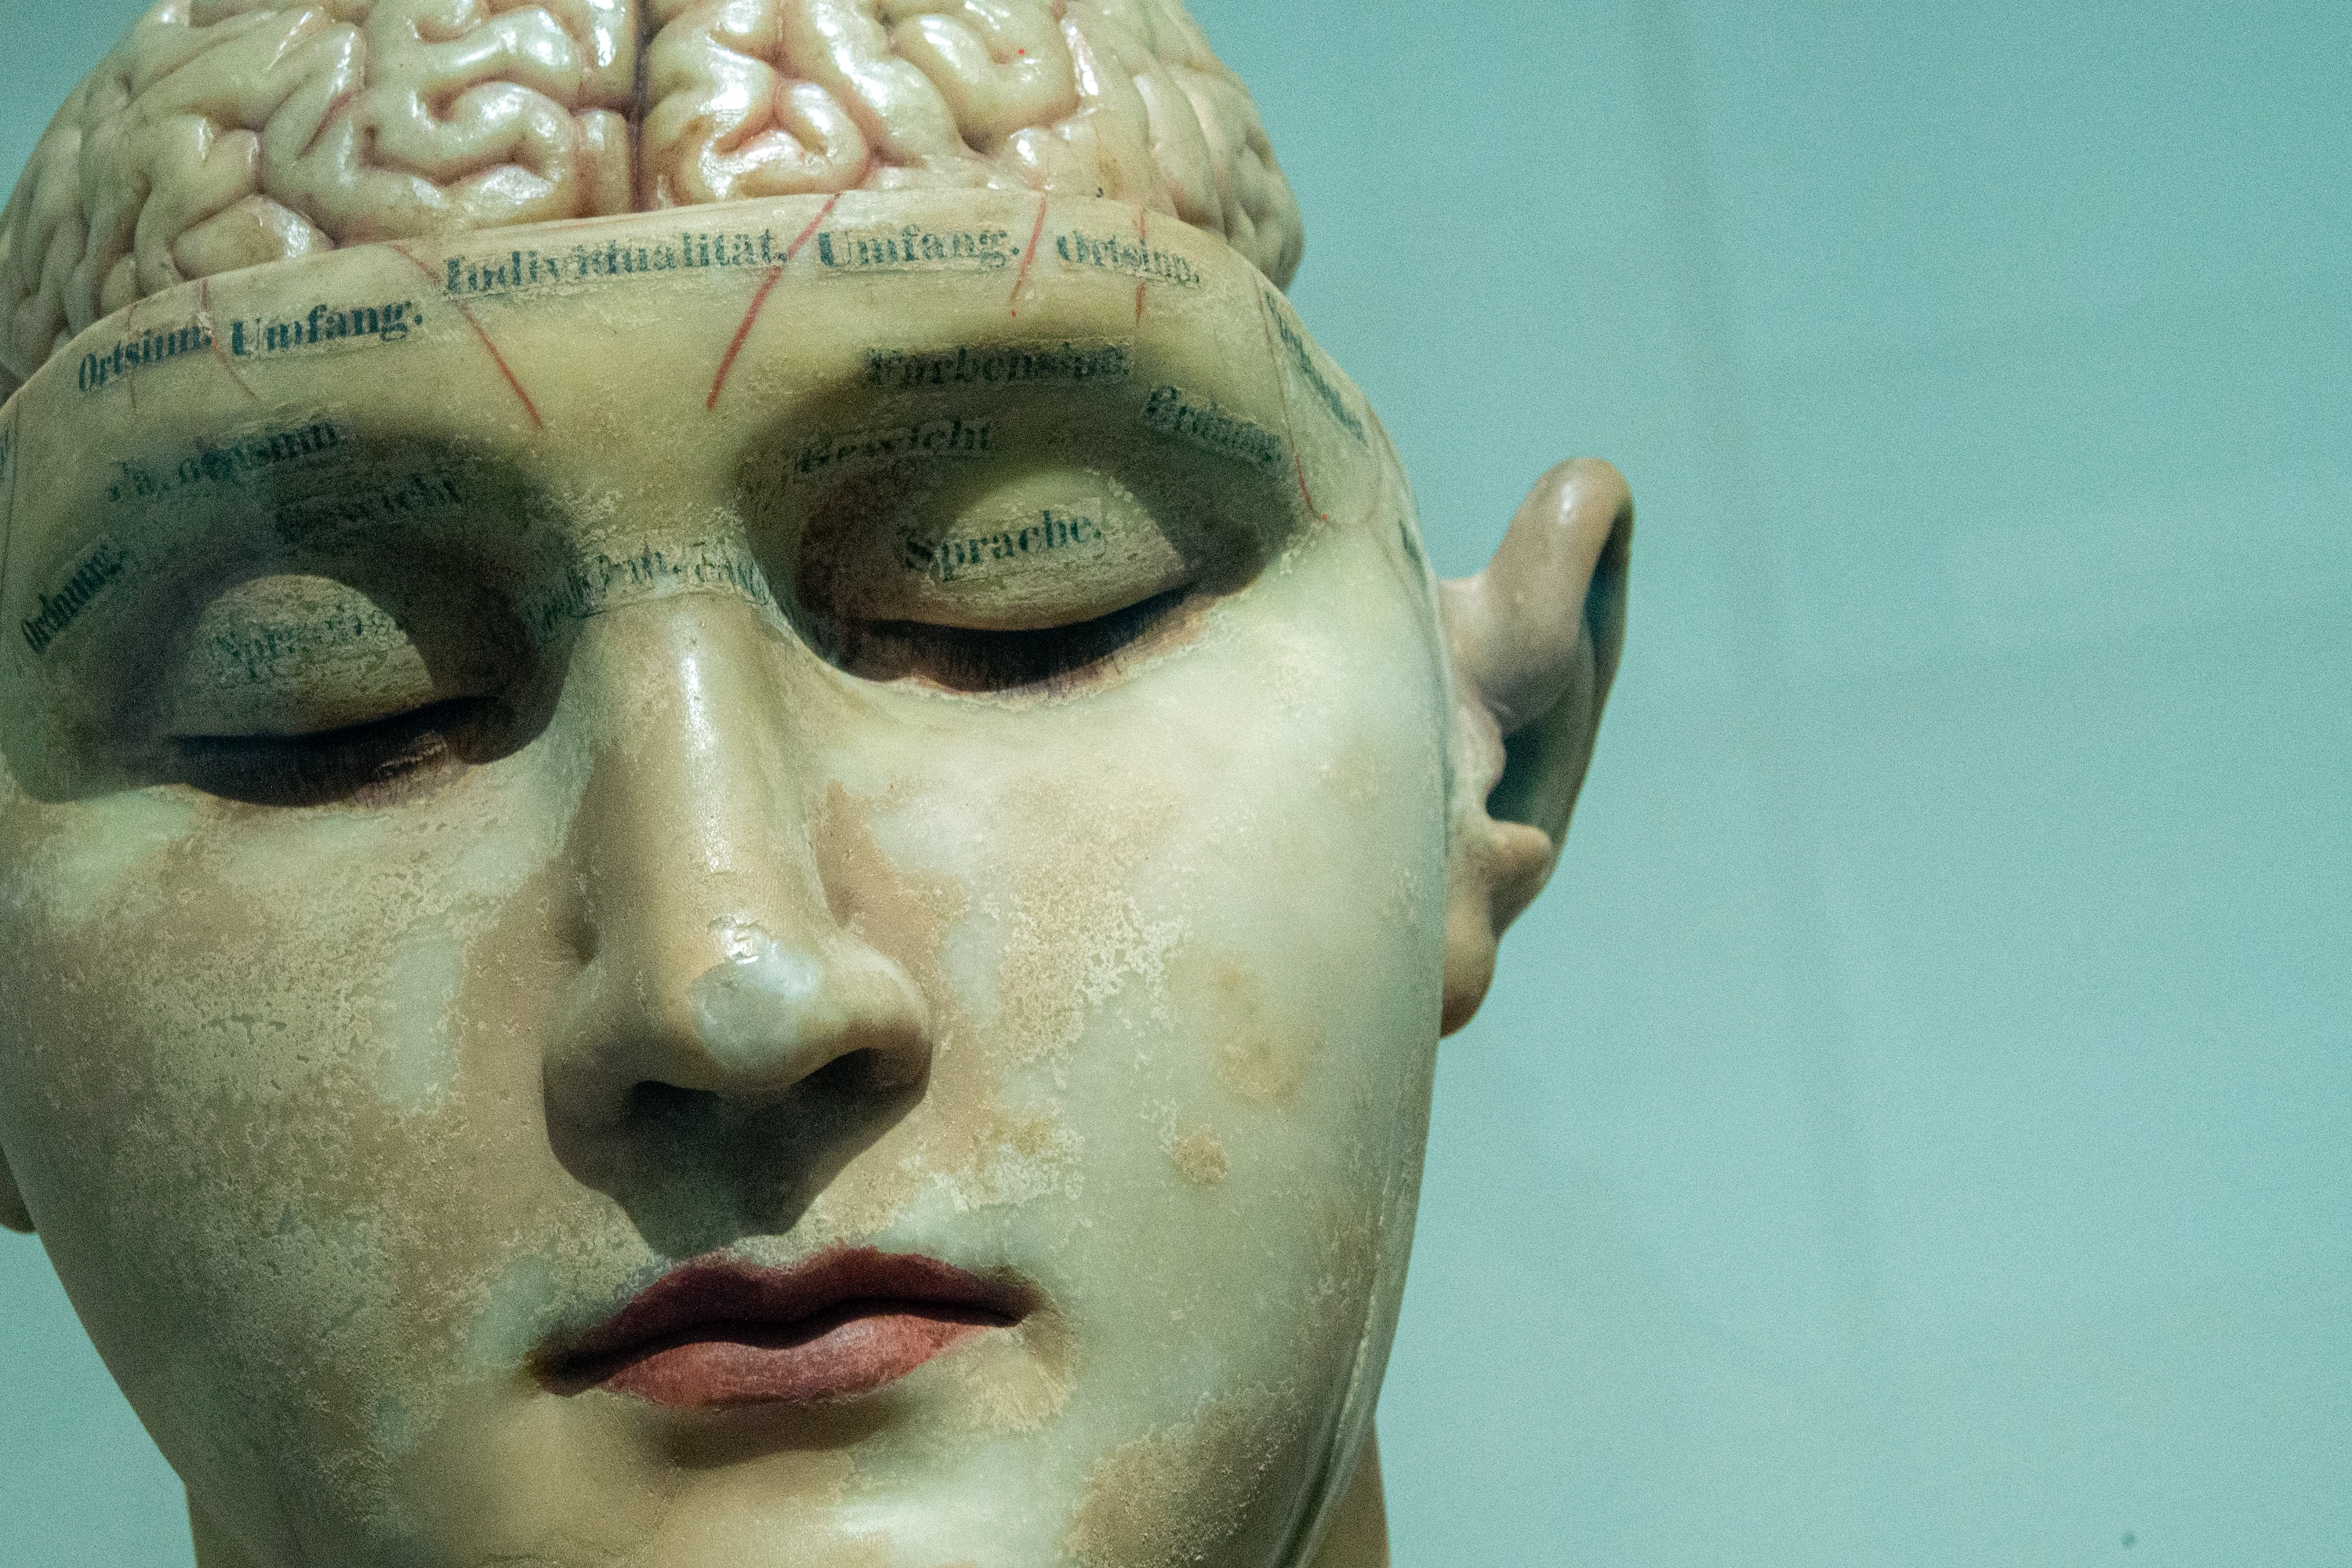 sculpture of a human head with the brain showing on top